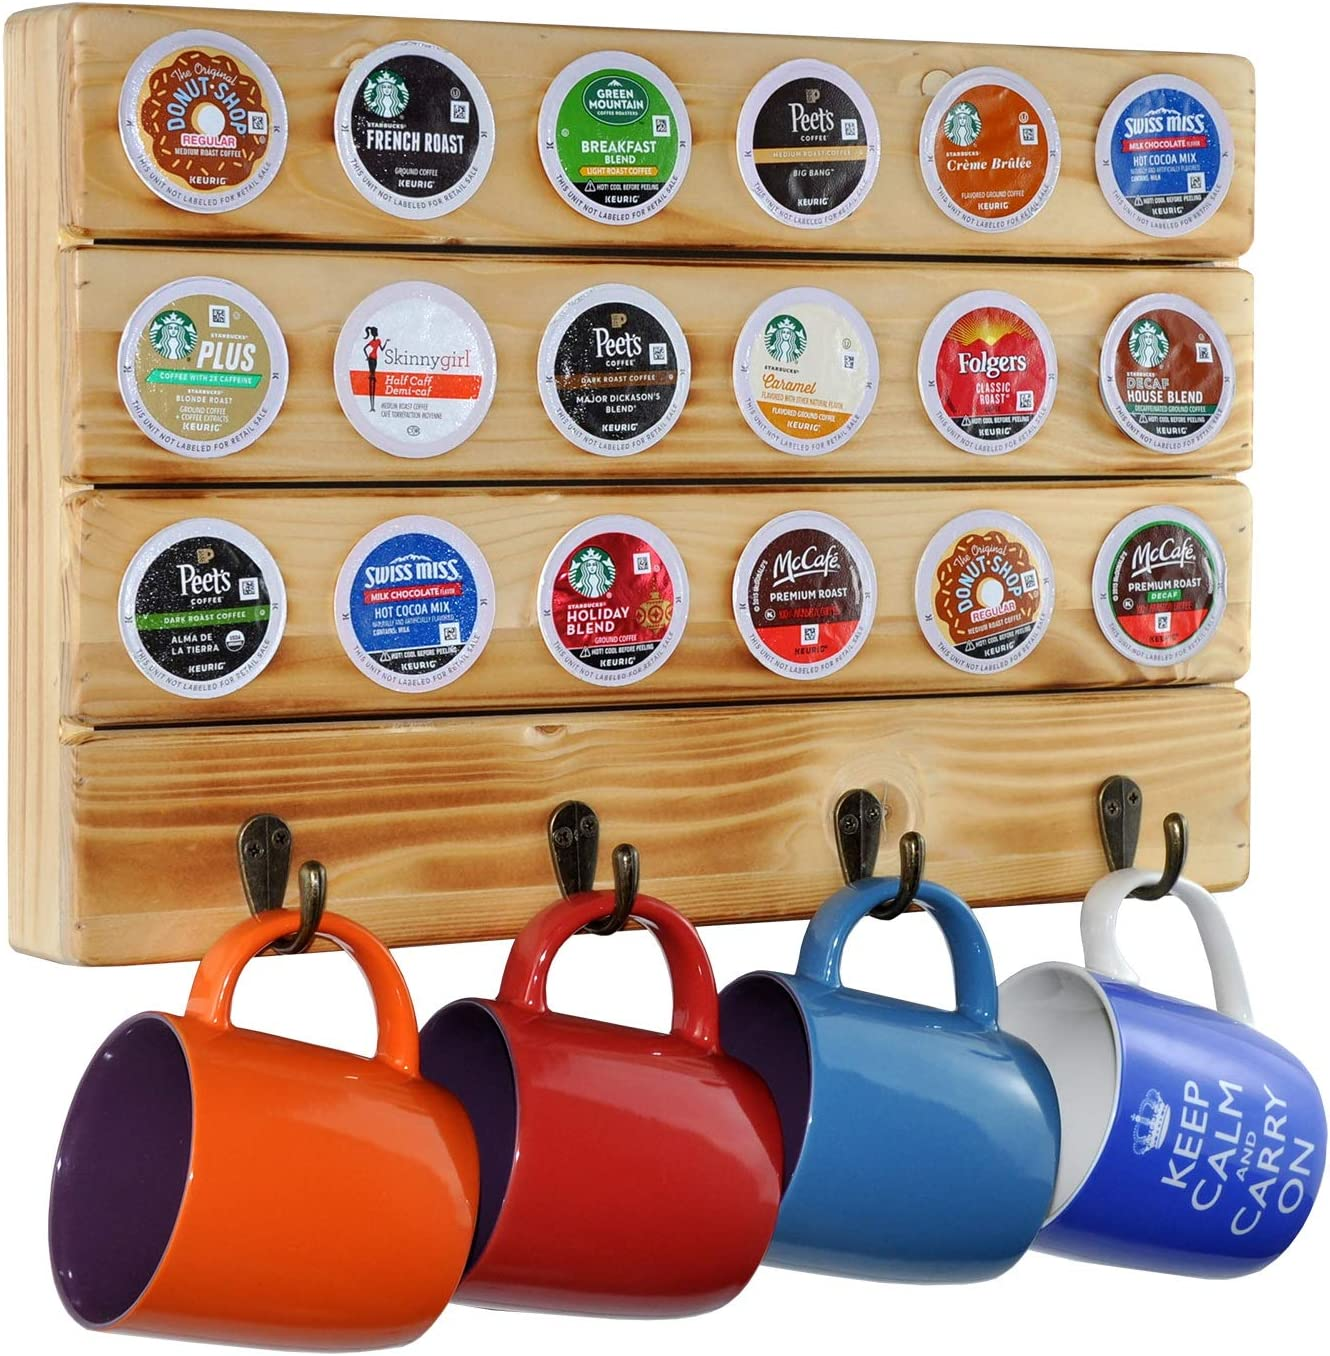 Solid Pine Wood in Torched Natural Beige Wall Mount Mug Holder by Metal Hooks Spiretro Coffee Pod Organizer for K-Cup Pods 18 Capsule Storage and 4 Mugs Hang for Kitchen Dining Coffee Room